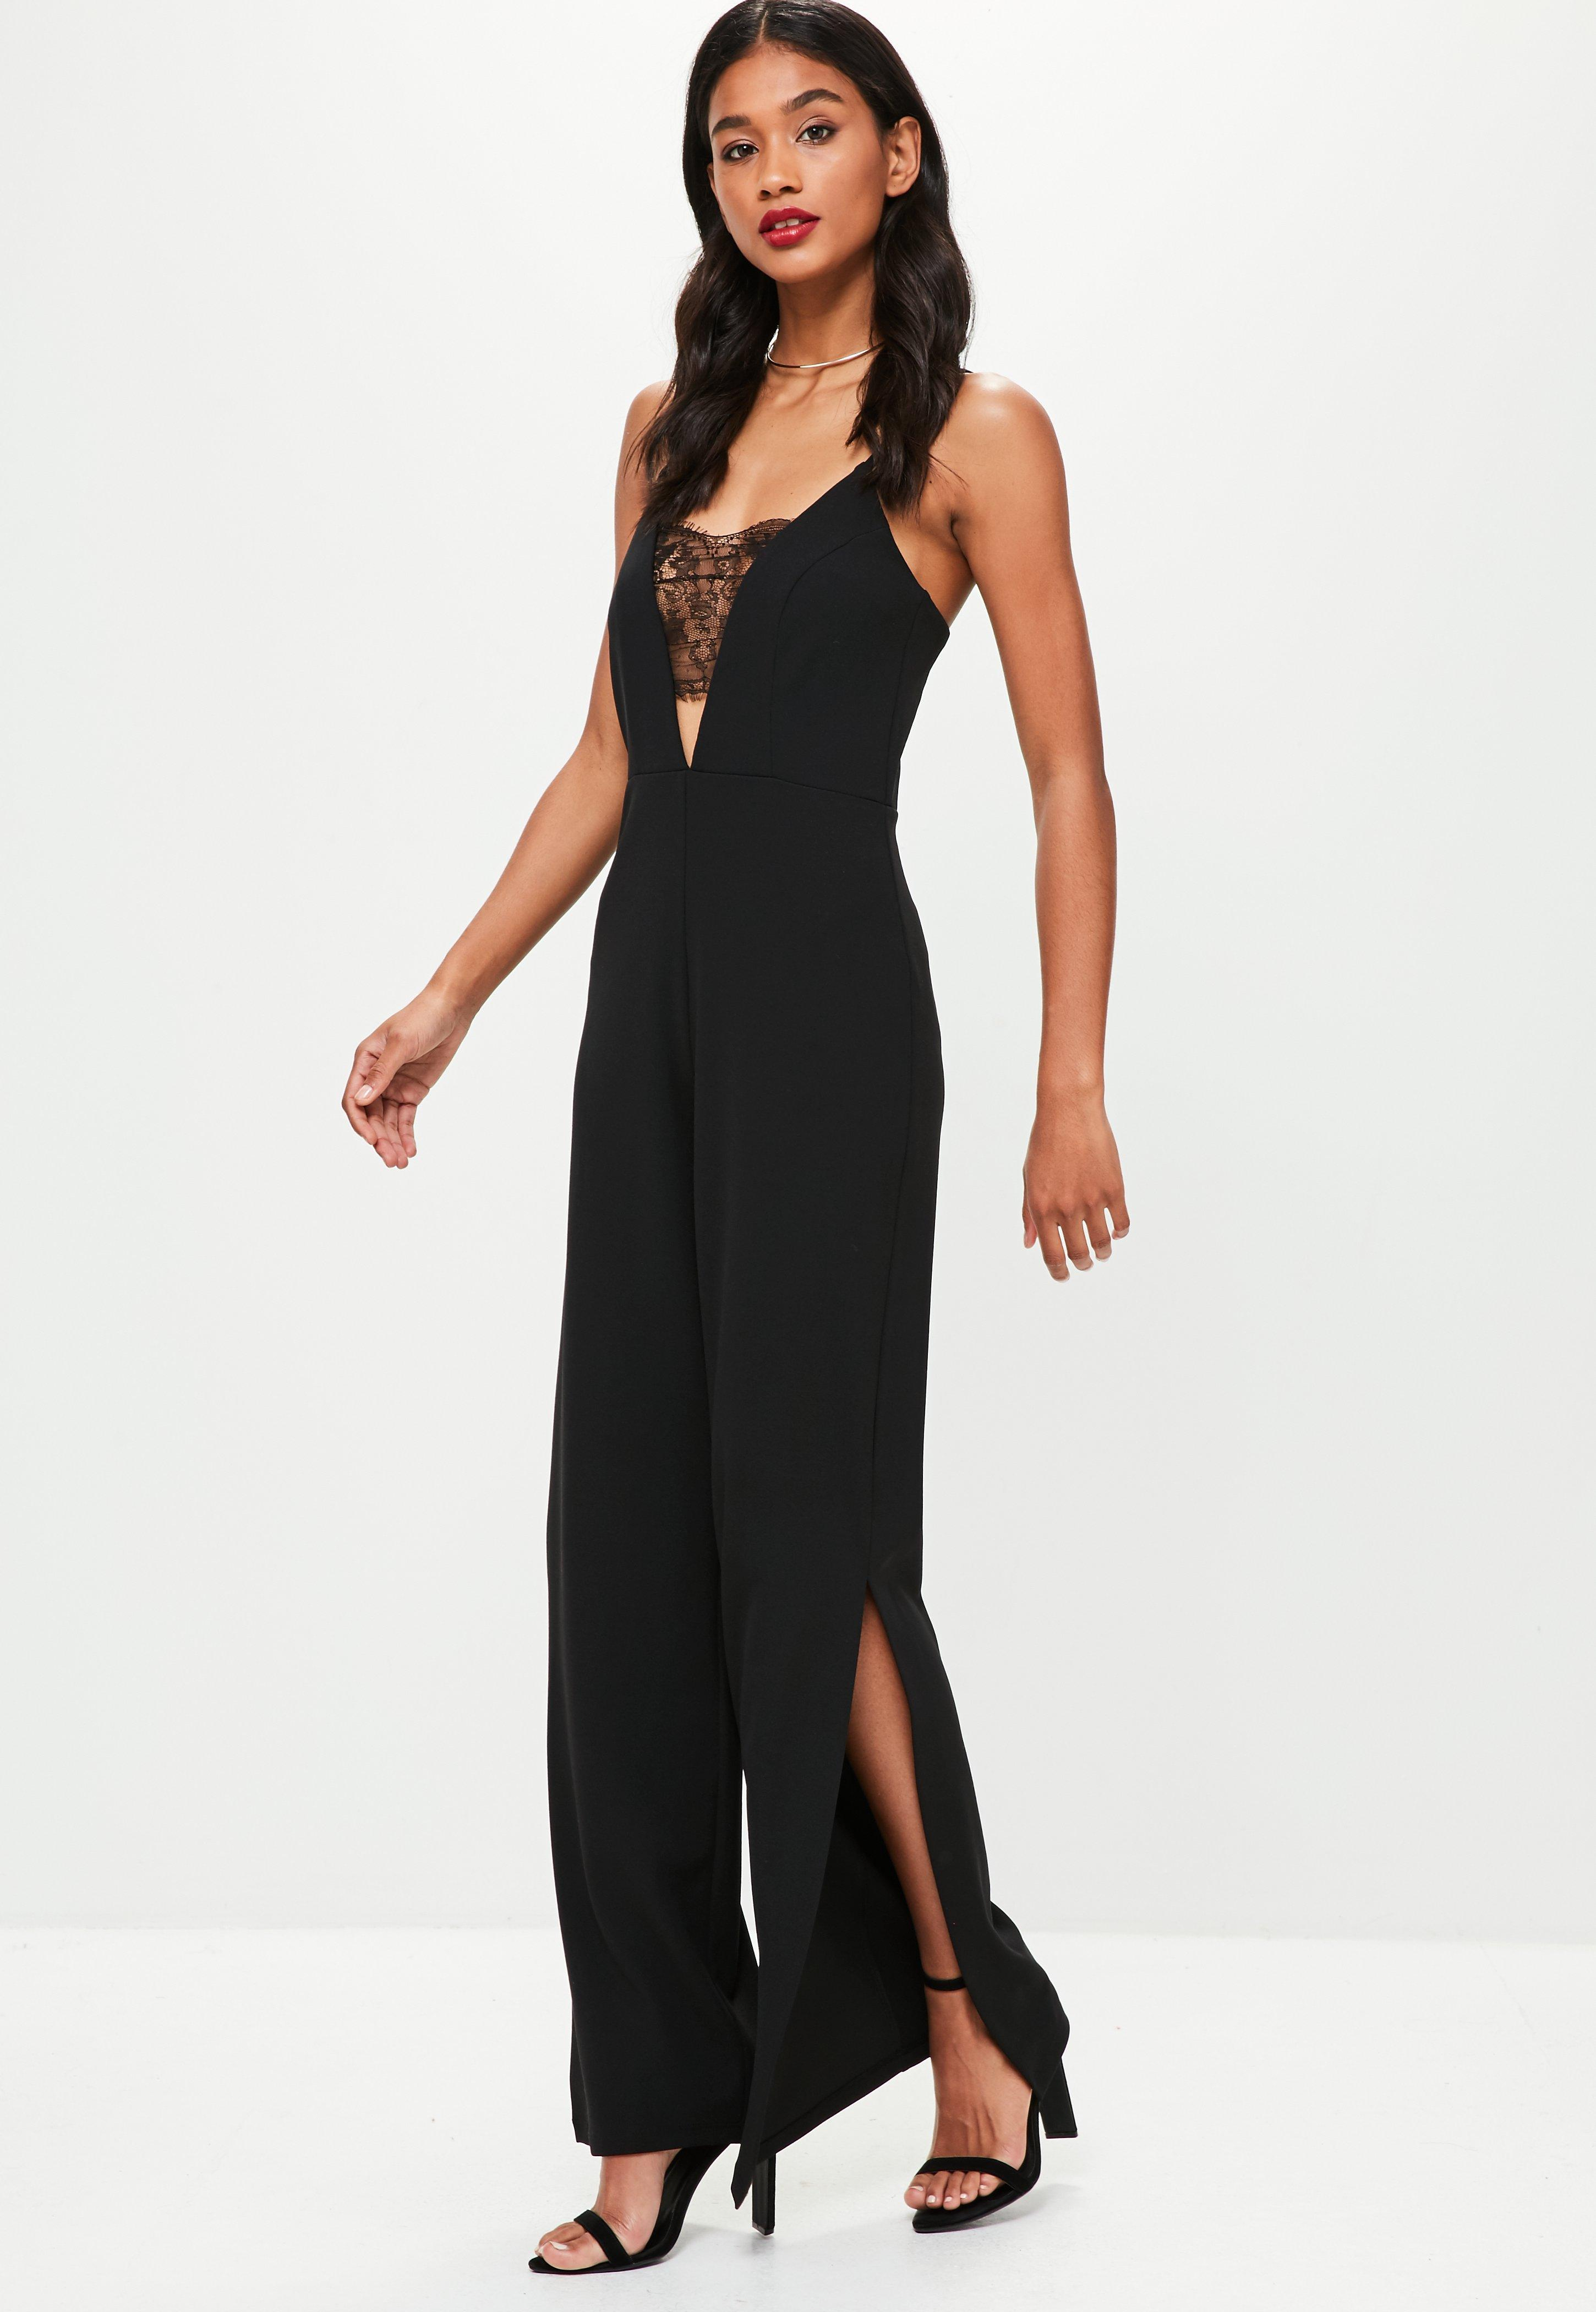 0ca5c2bf42df Gallery. Previously sold at: Missguided · Women's Black Jumpsuits ...